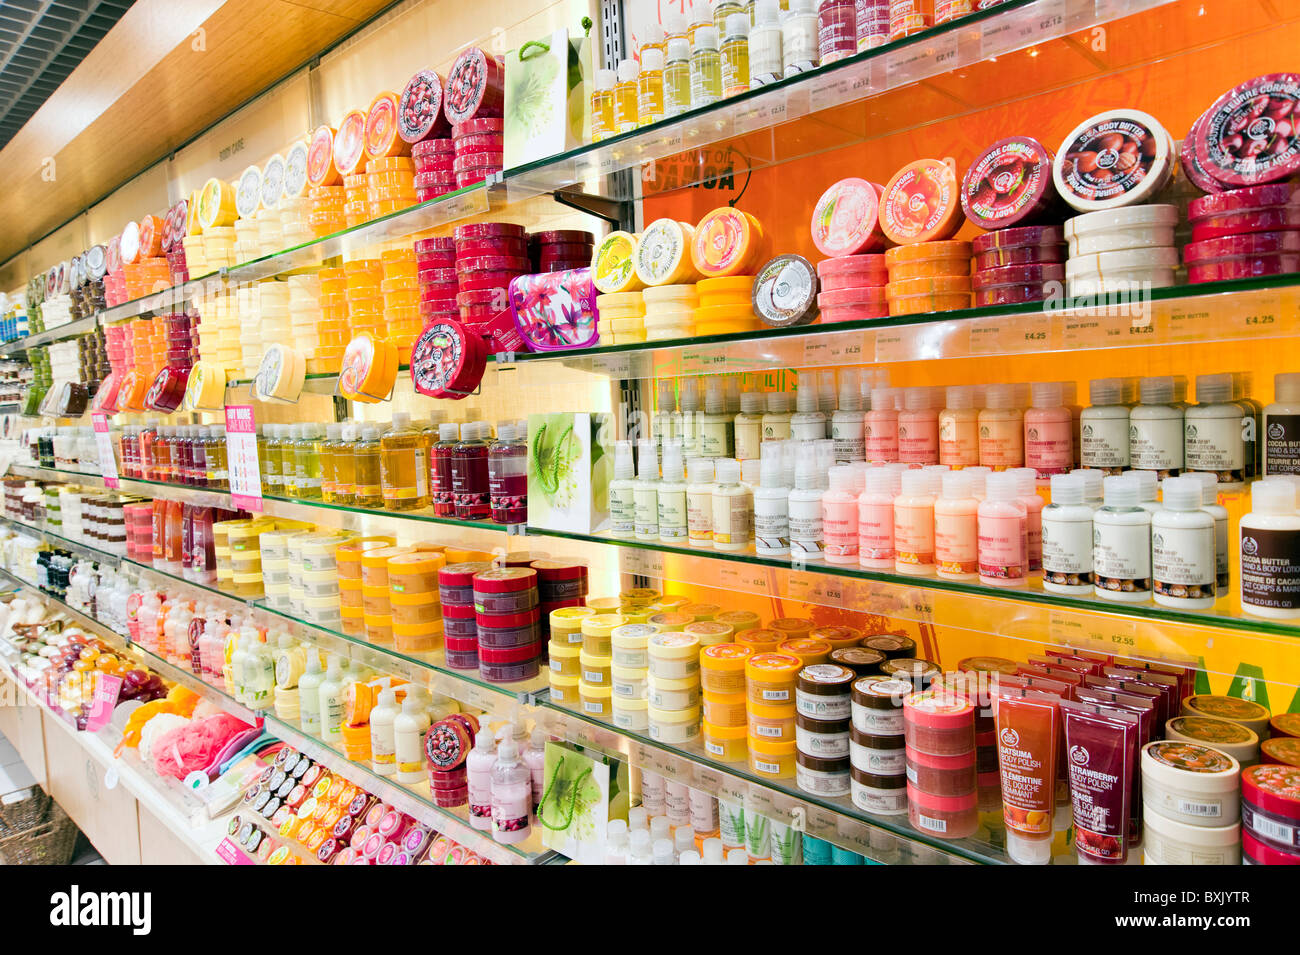 body shop uk strategic marketing While most of that content is produced centrally in the uk it is also localised to  meet the needs of different regions, allowing local body shop.